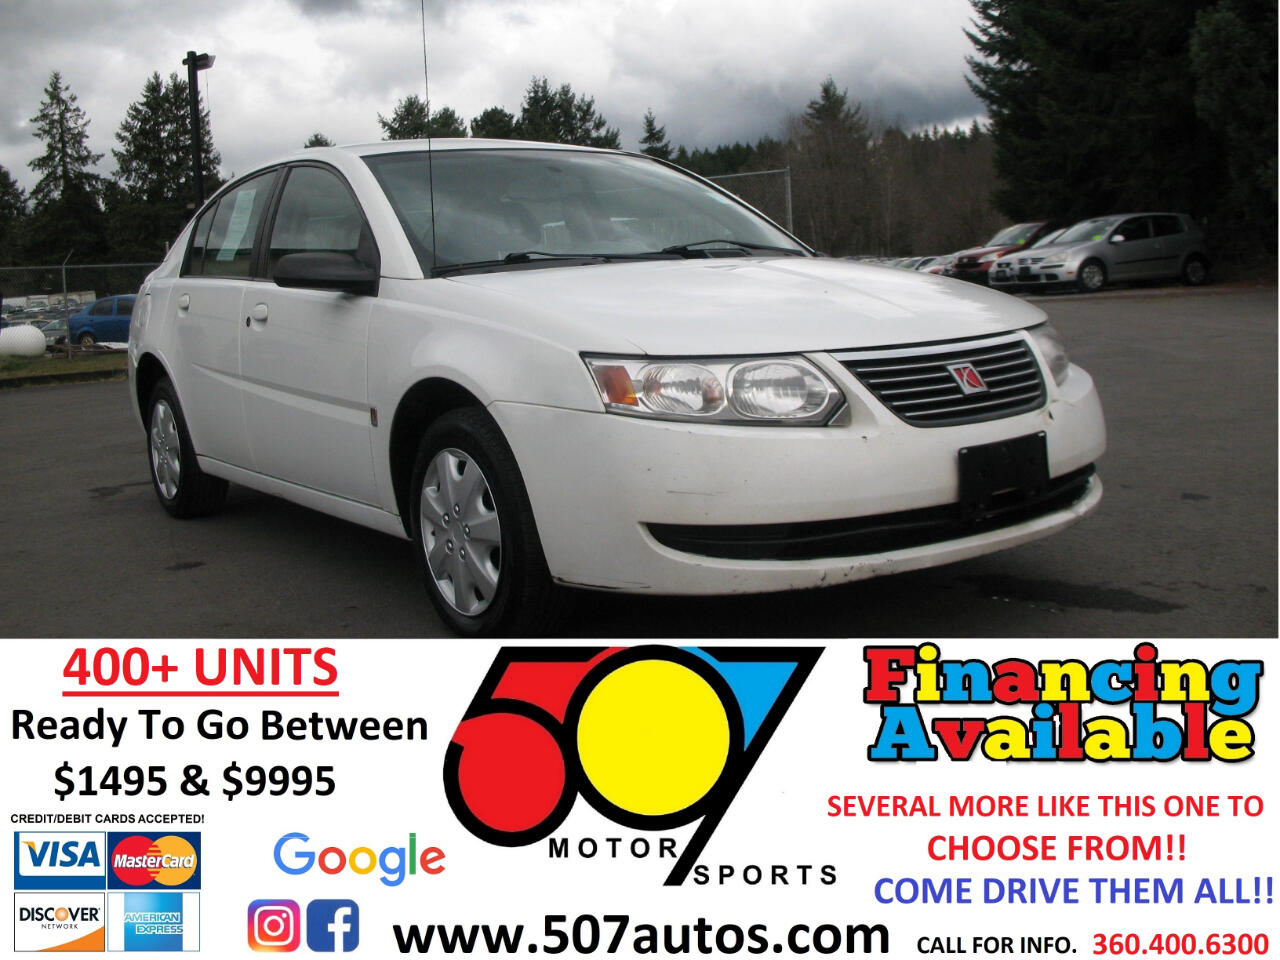 Saturn ION 4dr Sdn Auto ION 2 2007